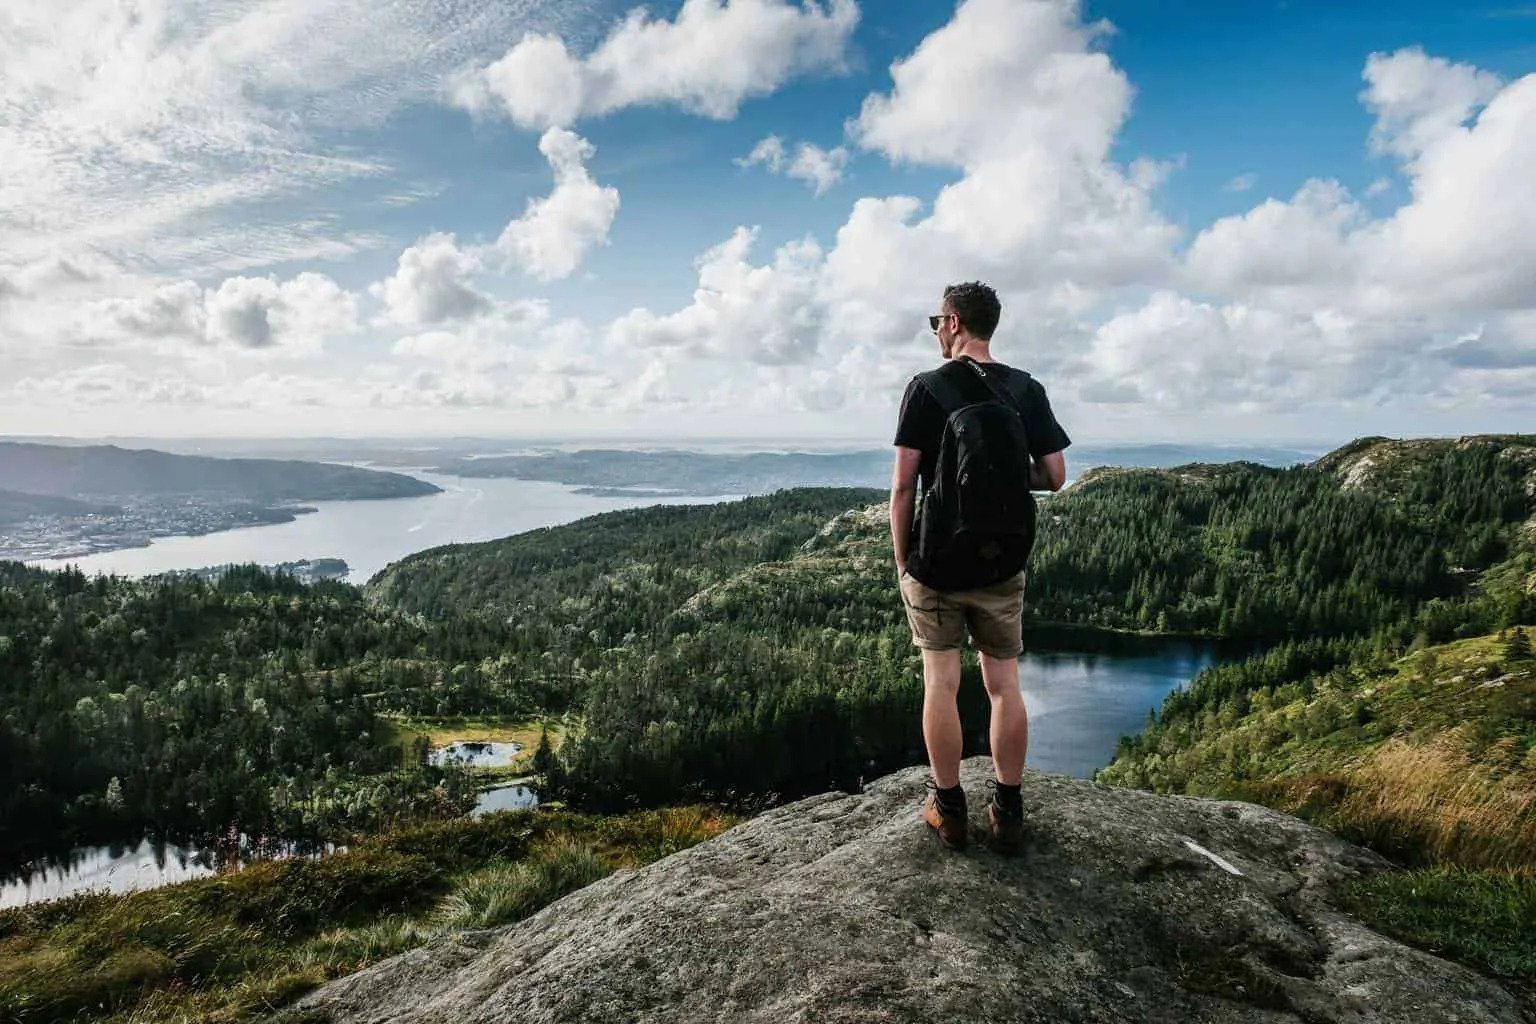 A backpacker alone in the outdoors